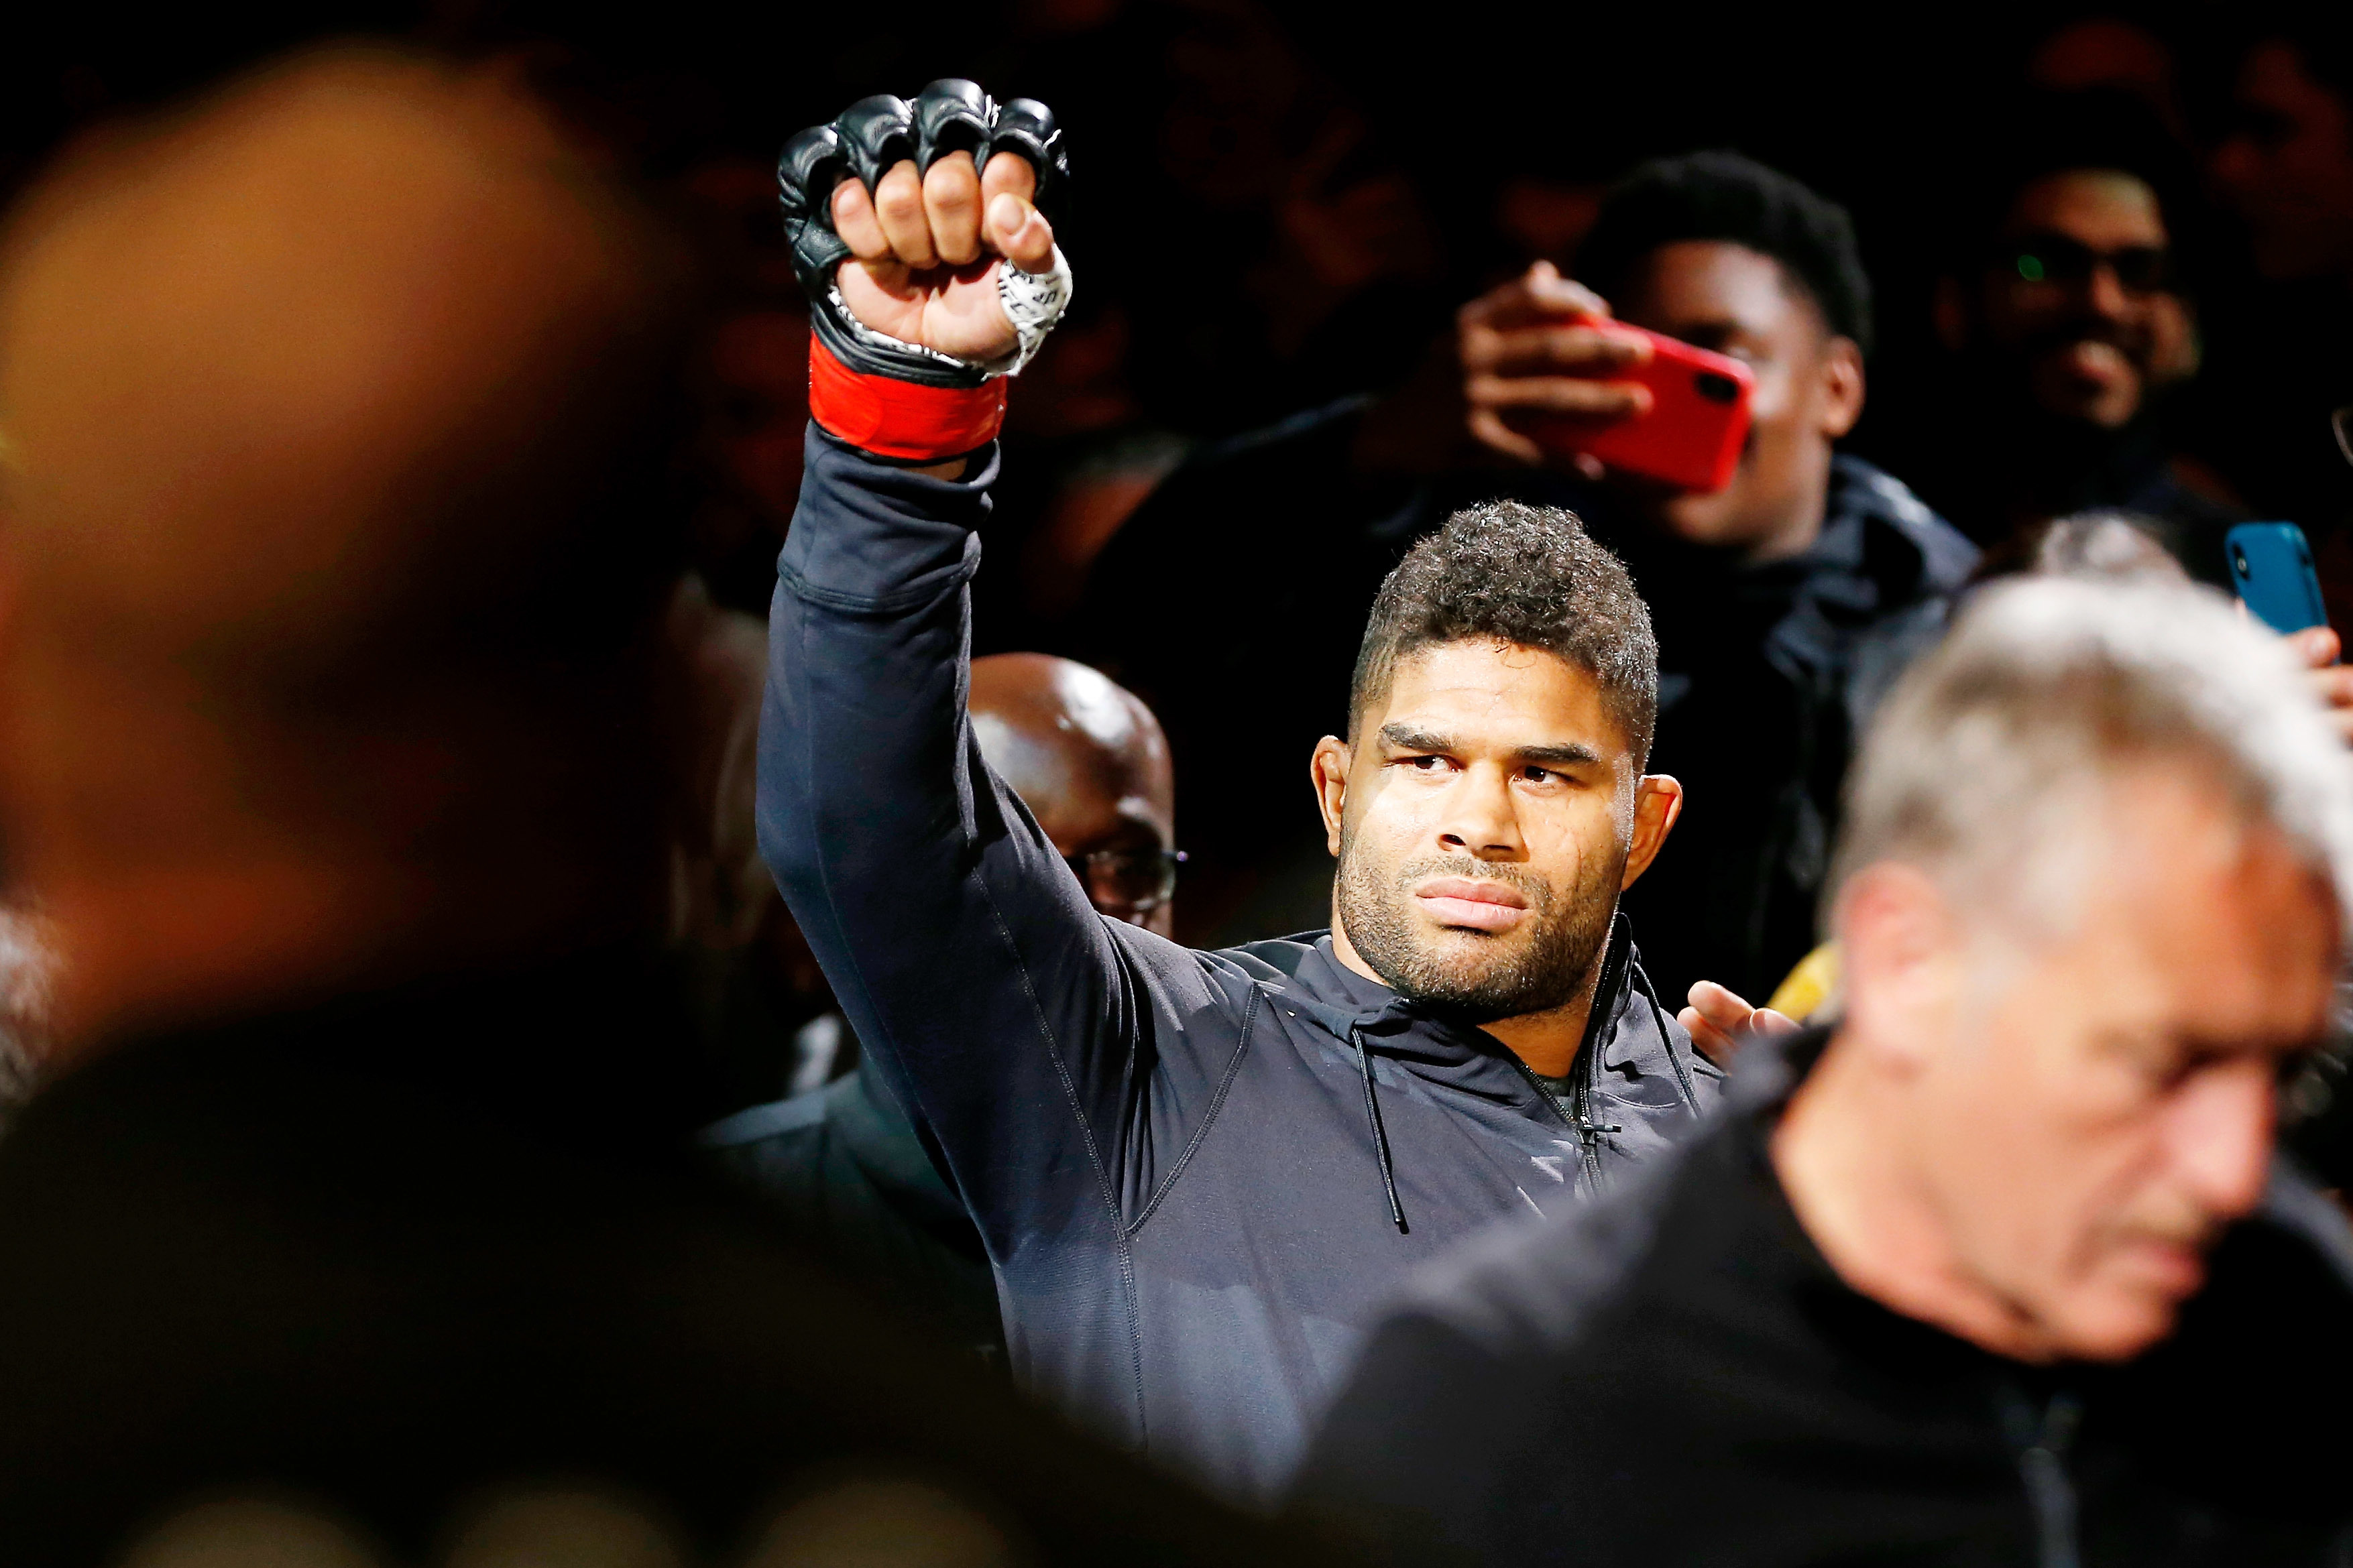 UFC Star Alistair Overeem's Lip Bust Open By Brutal Punch